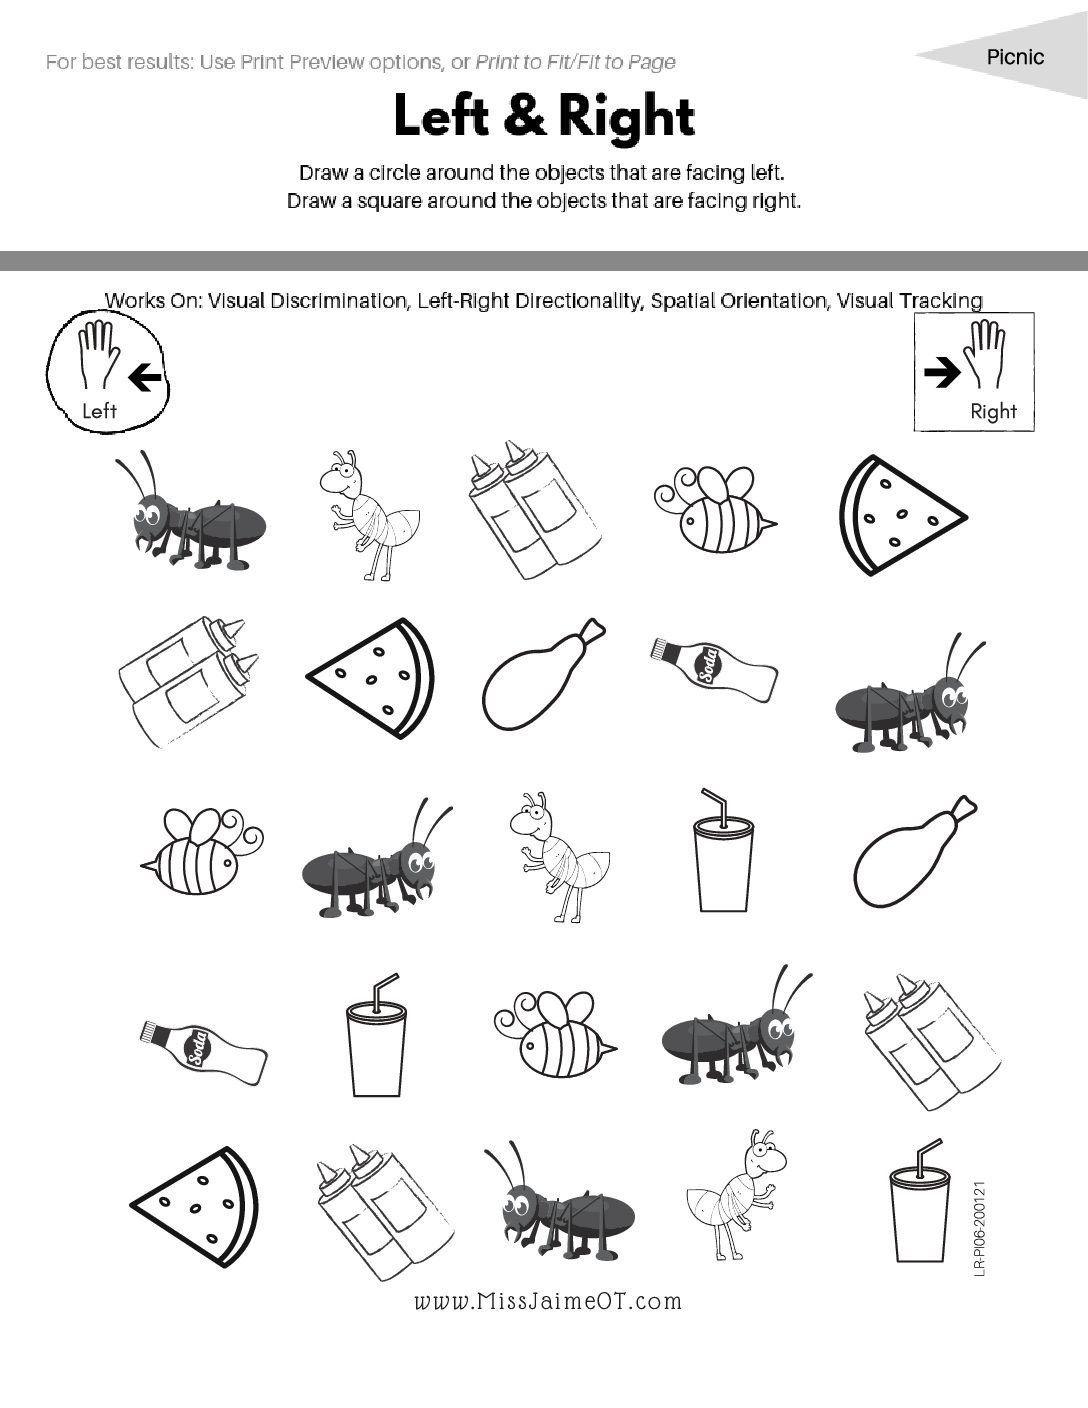 Spatial Relations Worksheets Spatial Relations Dictation